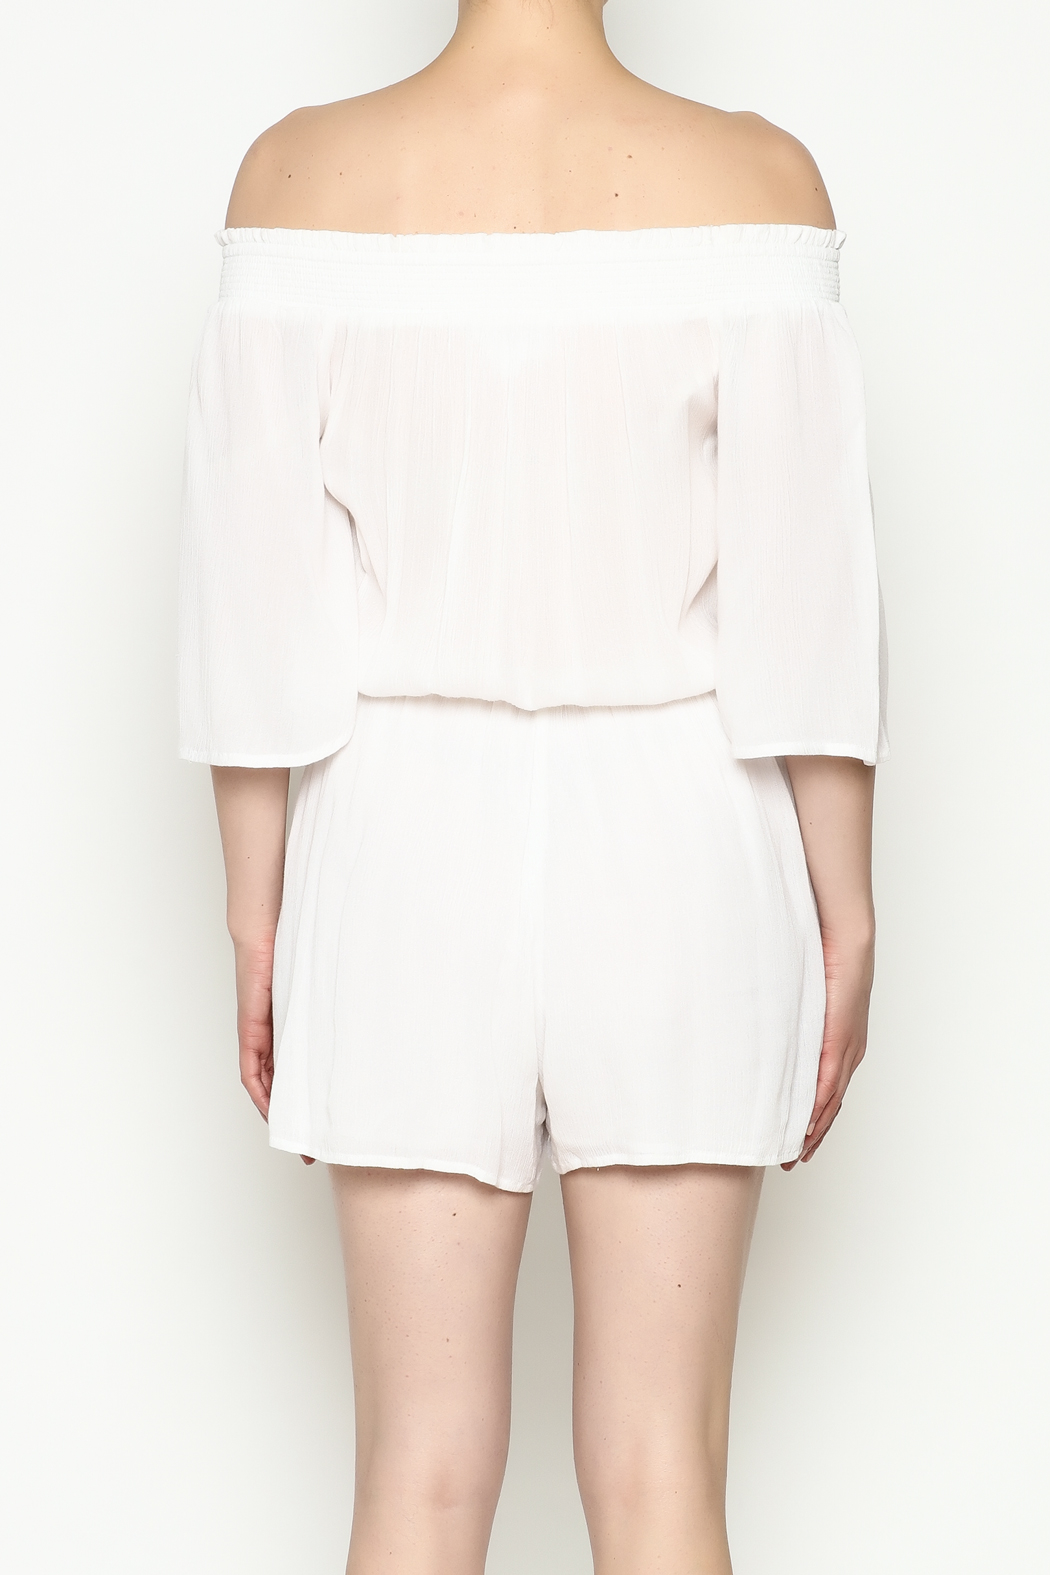 Olive & Oak White Romper - Back Cropped Image